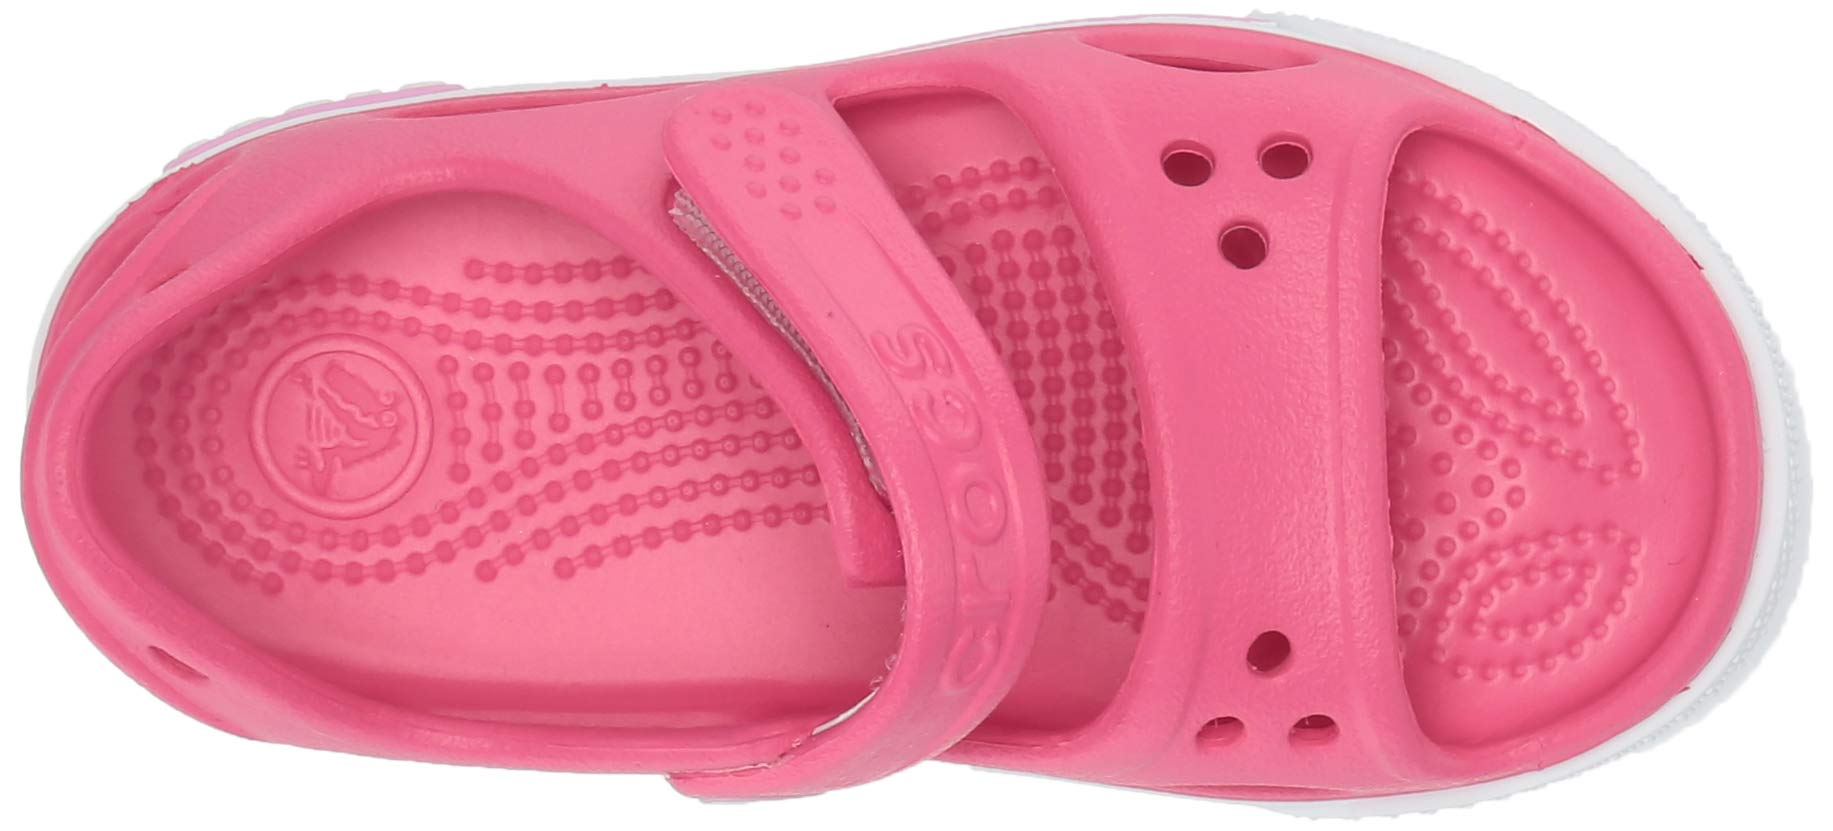 Crocs Kid's Boys and Girls Crocband II Sandal | Pre School, Paradise Pink/Carnation 6 M US Toddler by Crocs (Image #8)